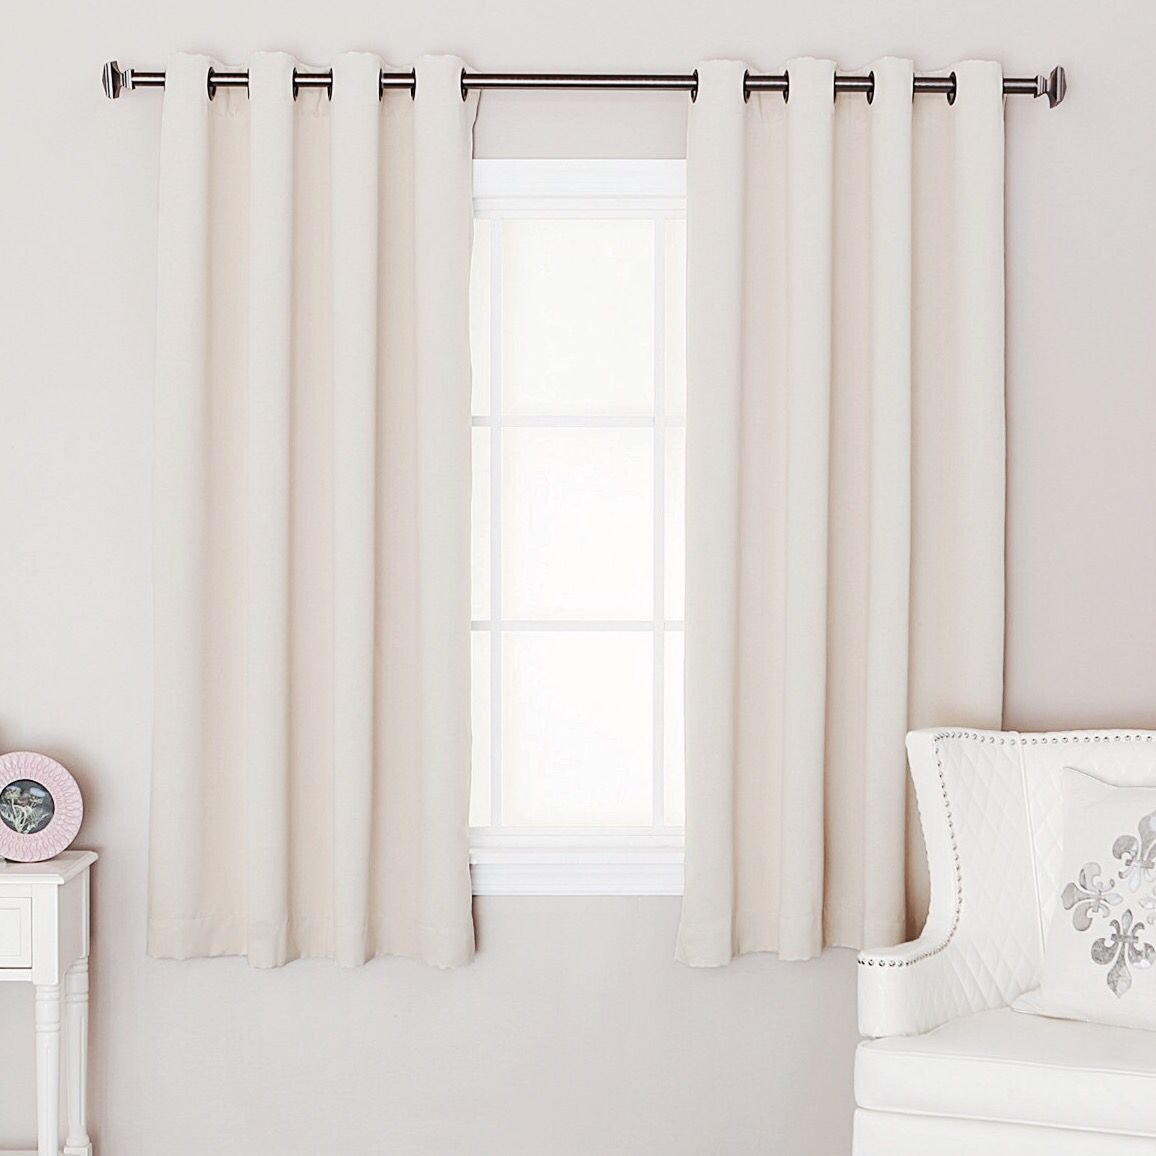 Best Short Curtains Square Bedroom Window Mid Century With Pictures